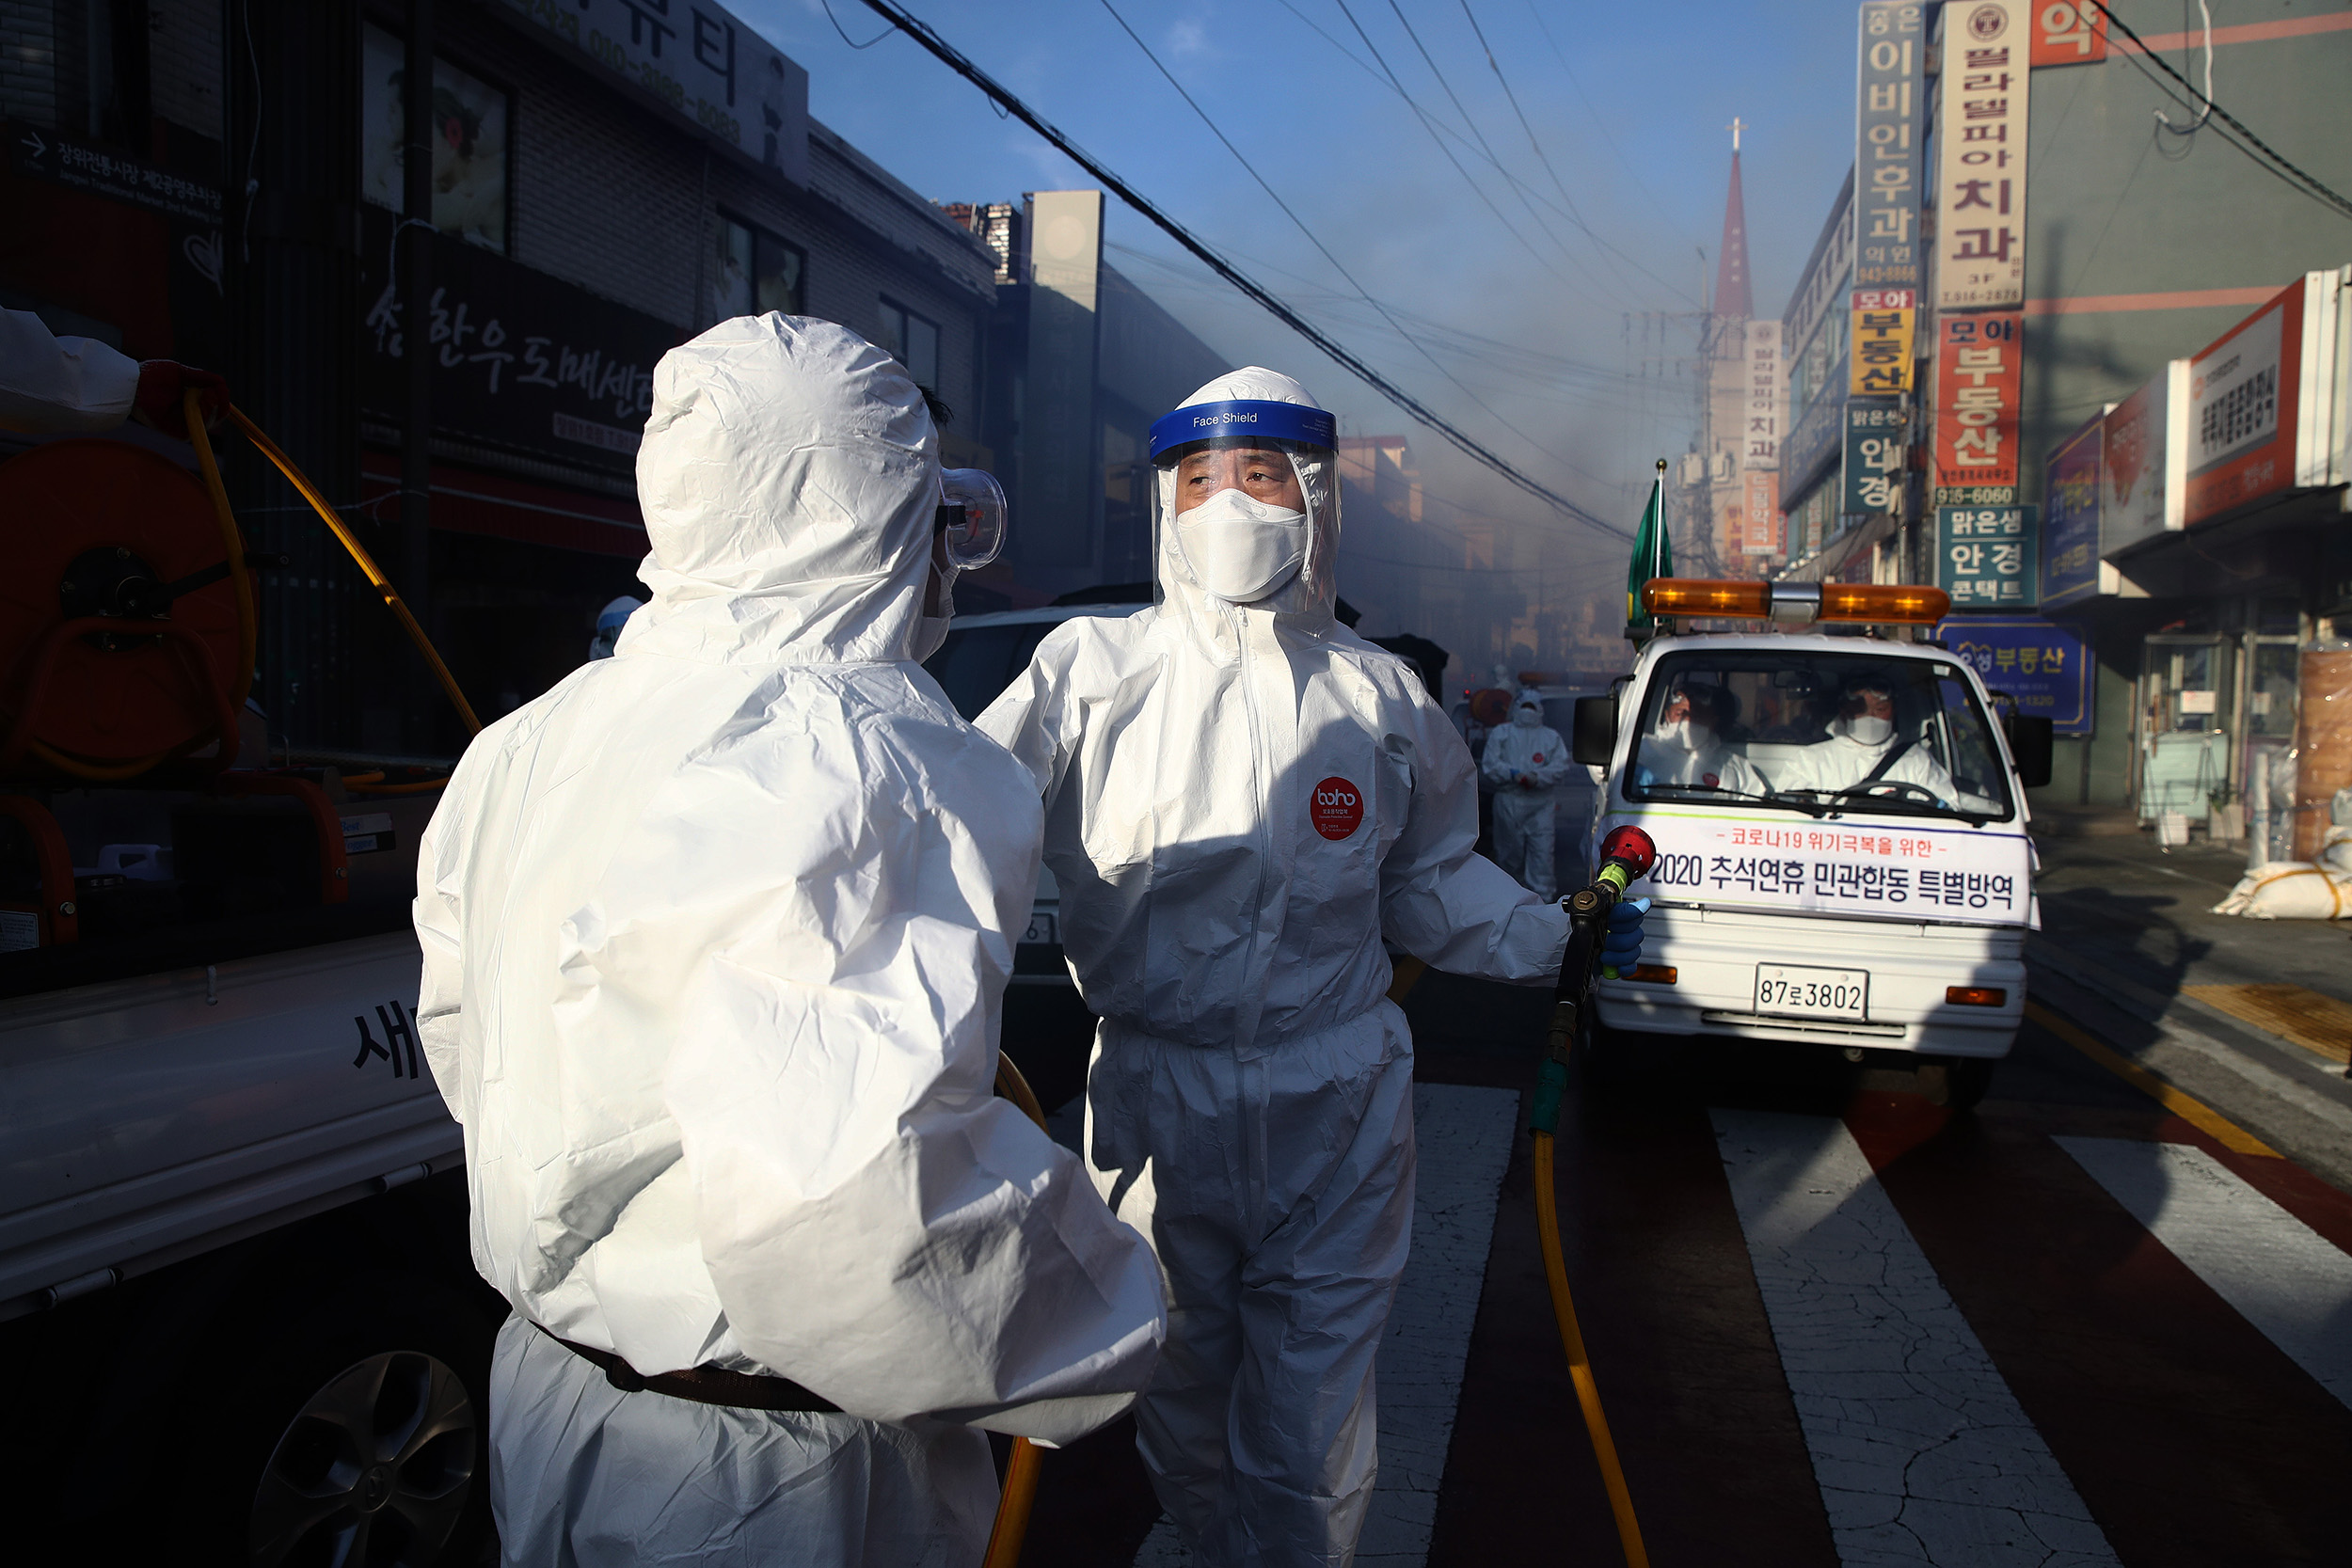 Workers wearing personal protective equipment disinfect a street to preventthe spread of coronavirus on October 6, in Seoul, South Korea.